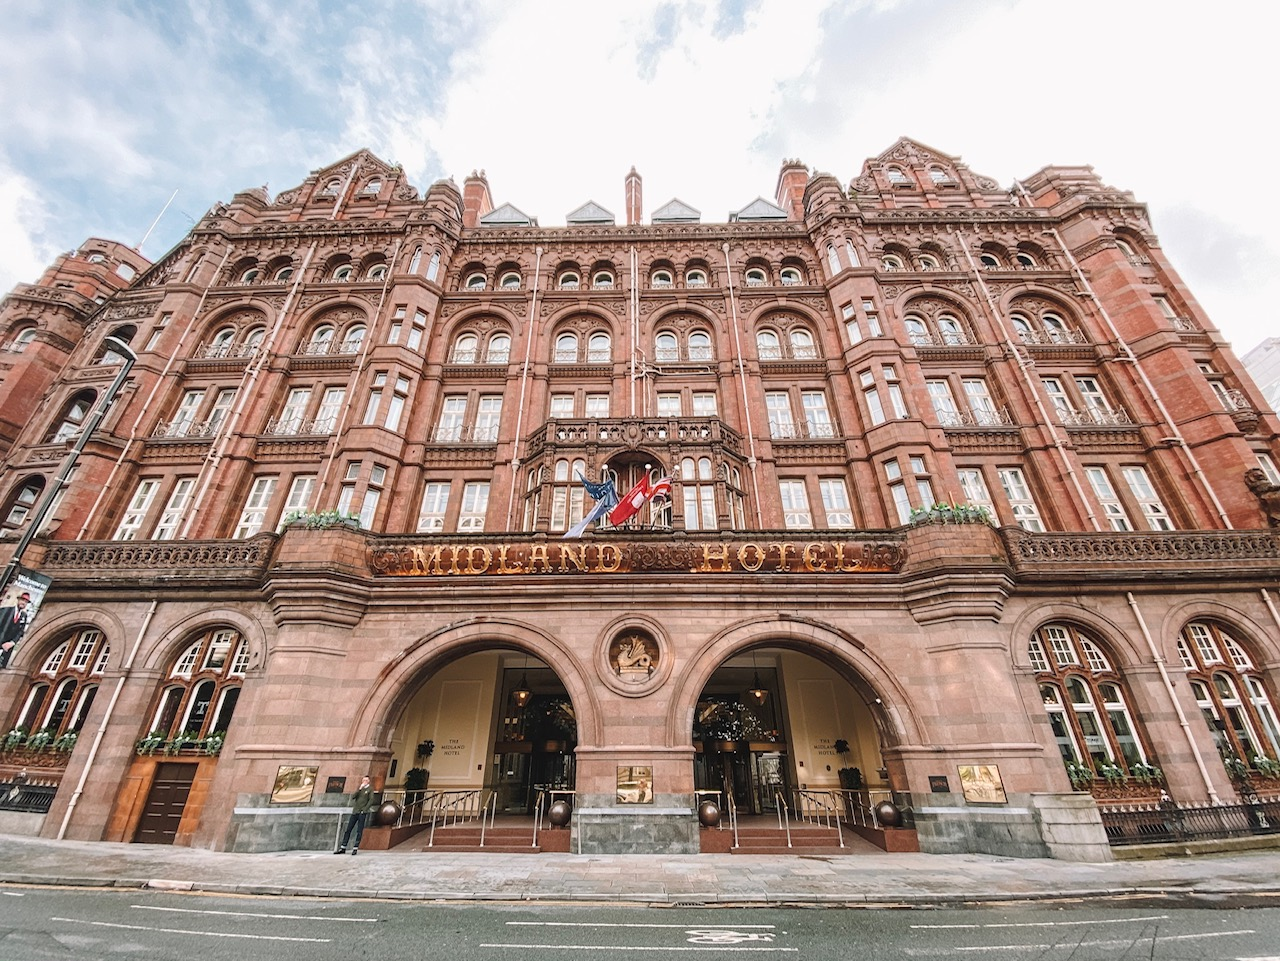 Travel blogger Amanda's OK visits the Midland Hotel in Manchester, UK